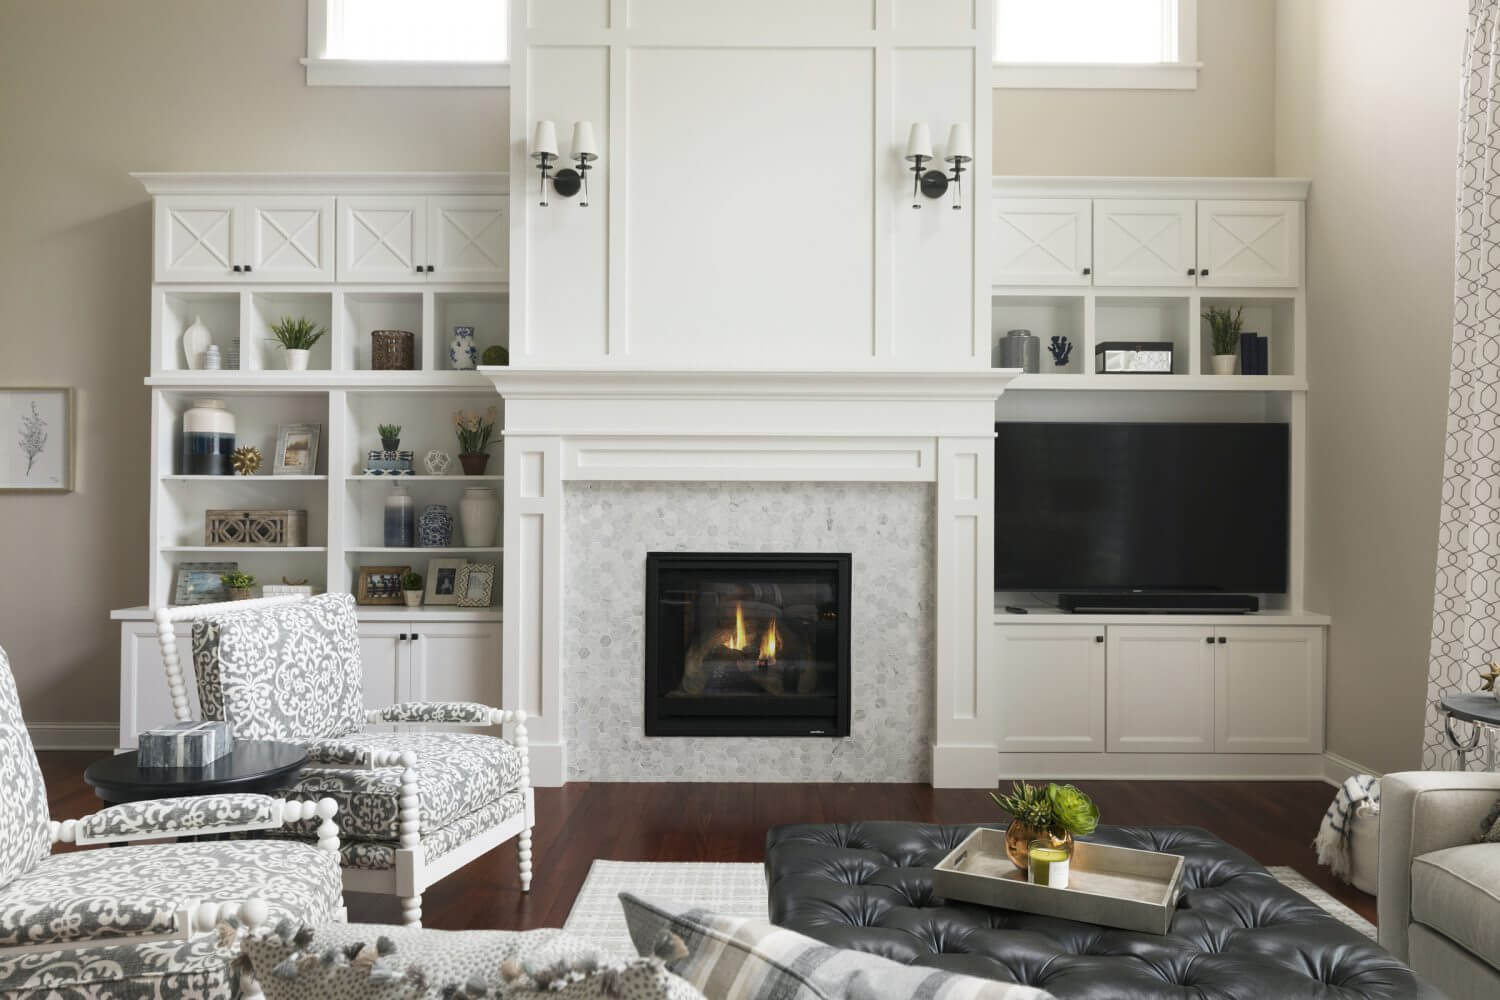 Two Story Woodbury Living Room Fireplace Design | Ispiri ...